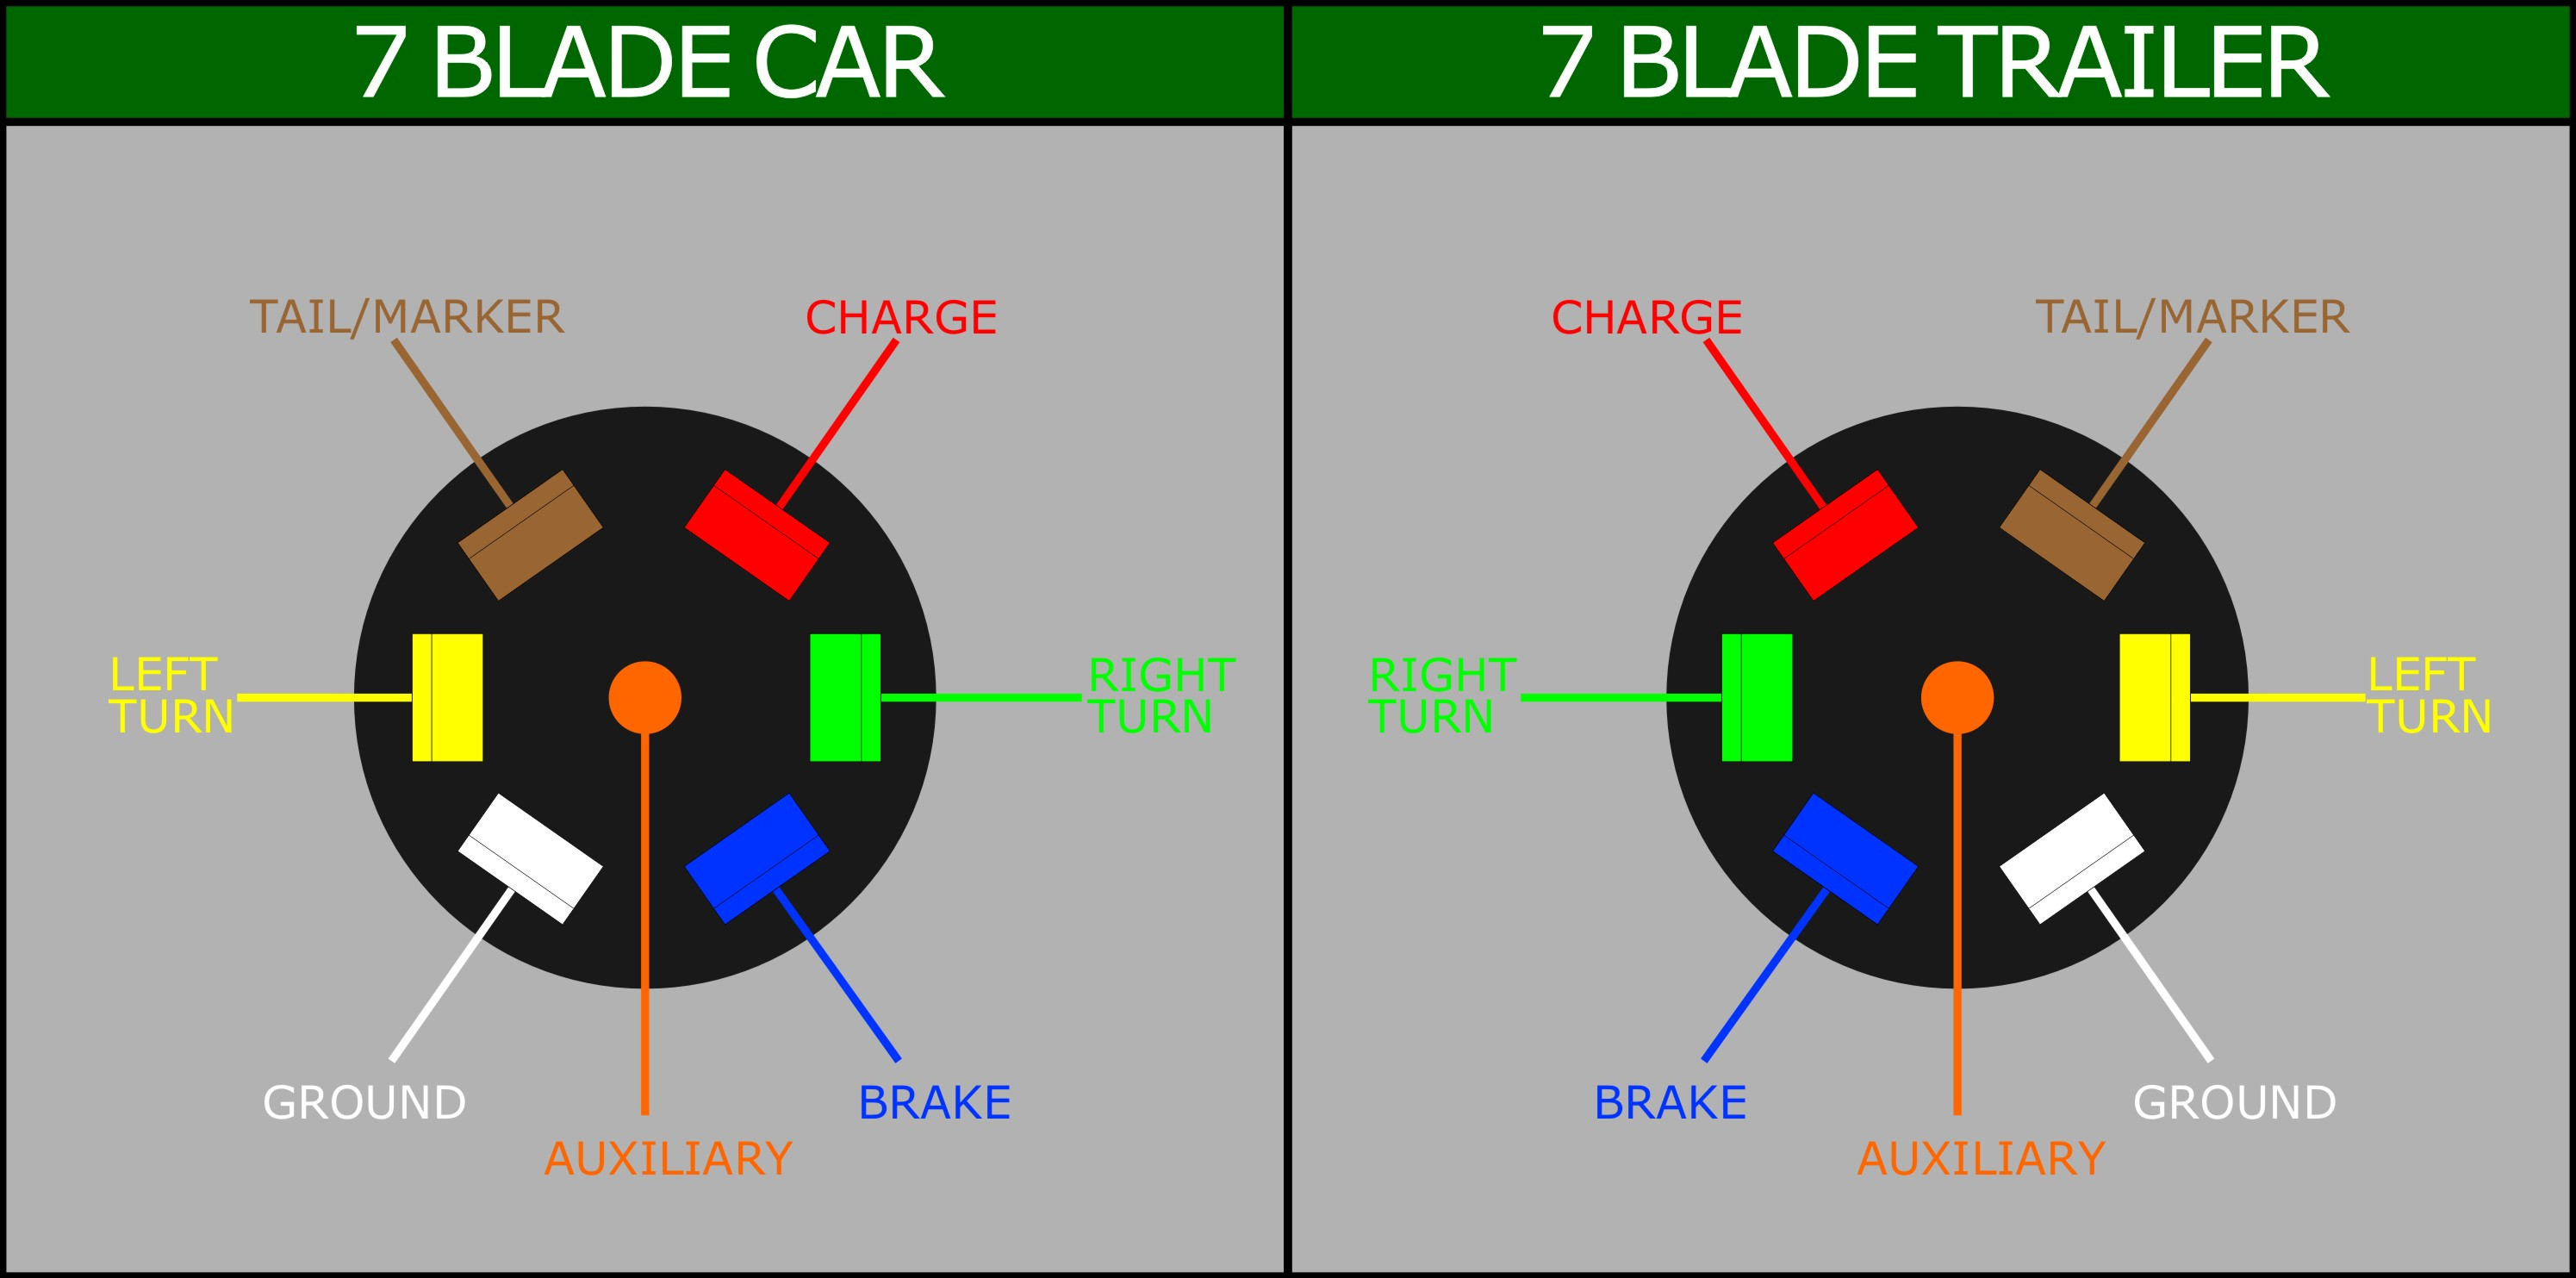 7 Wire Trailer Cable Diagram - Wiring Diagram Detailed - 7 Wire Trailer Plug Wiring Diagram